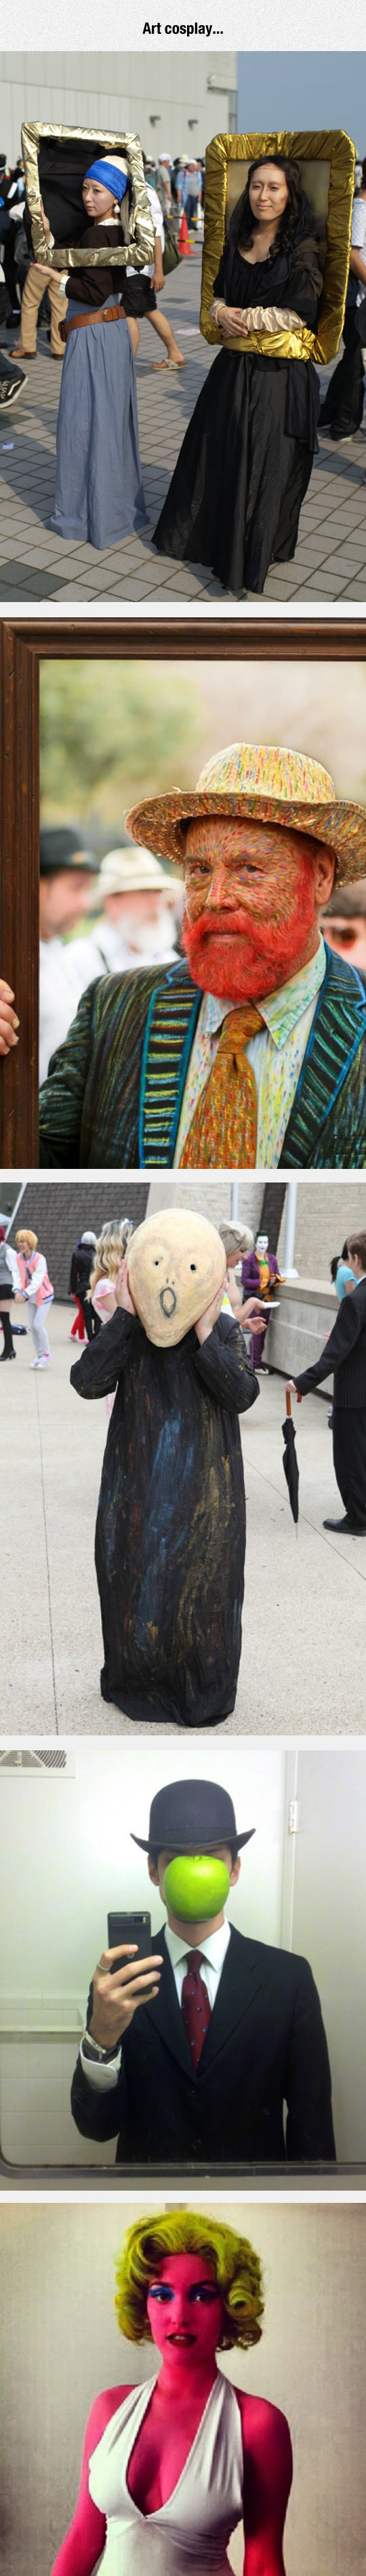 funny-art-cosplay-painting-Van-Gogh